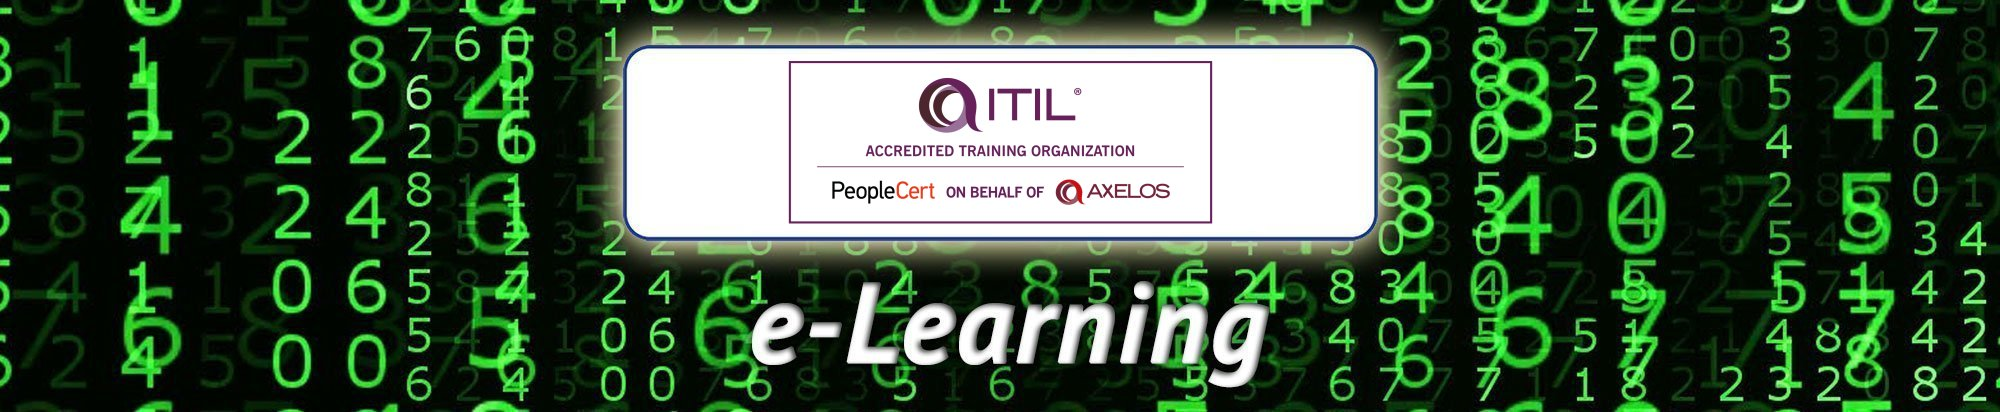 ITIL e-Learning